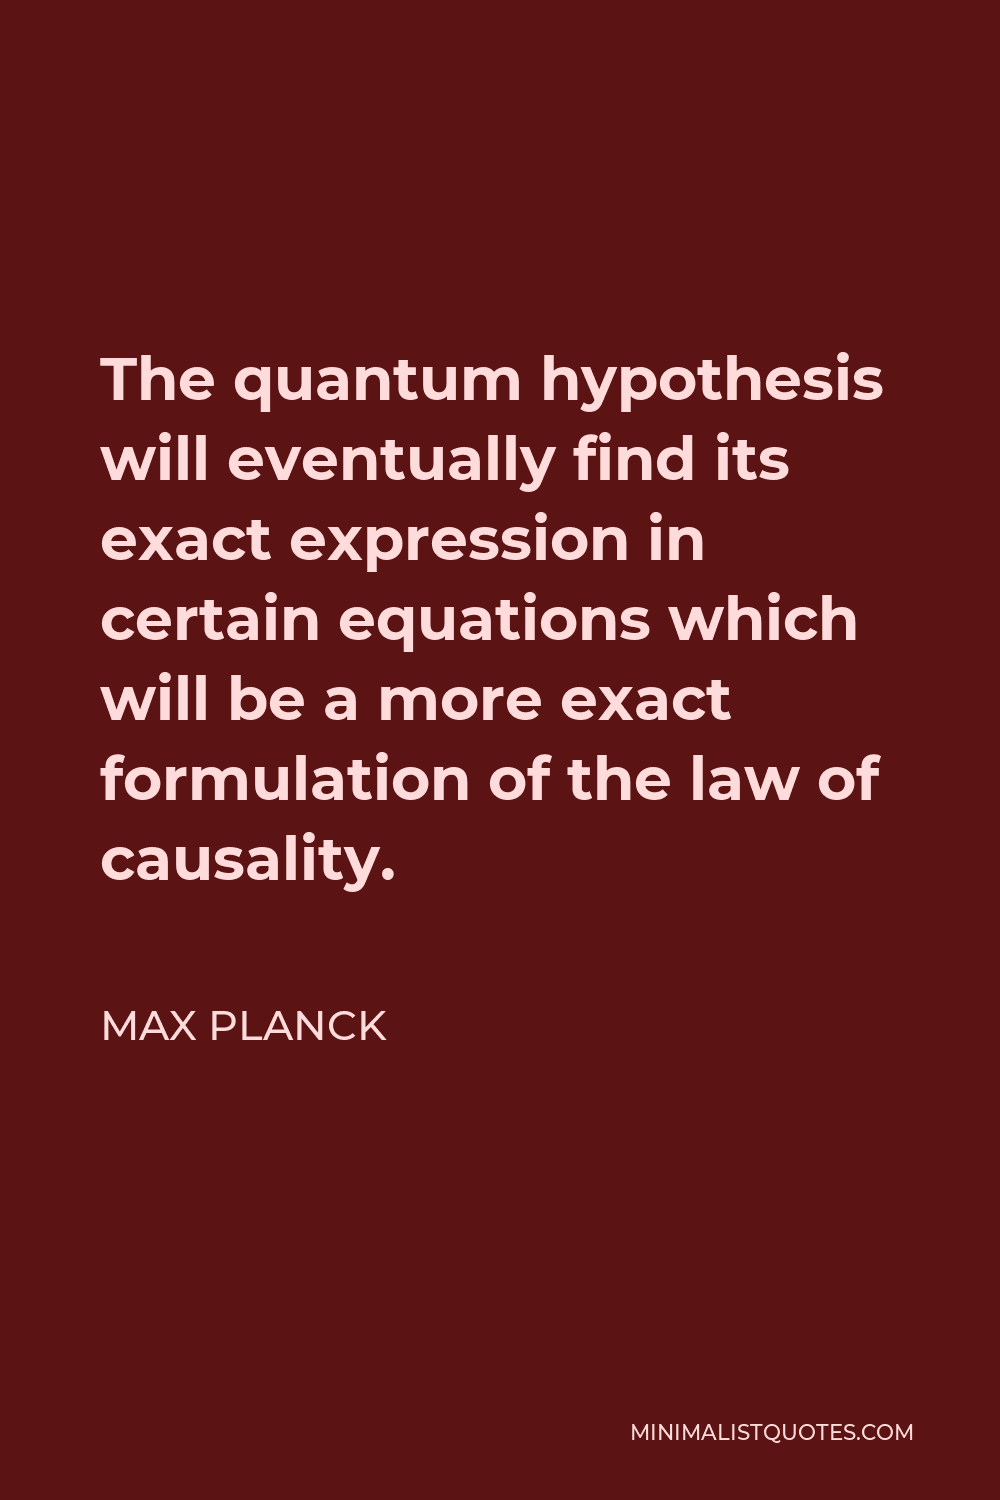 Max Planck Quote - The quantum hypothesis will eventually find its exact expression in certain equations which will be a more exact formulation of the law of causality.